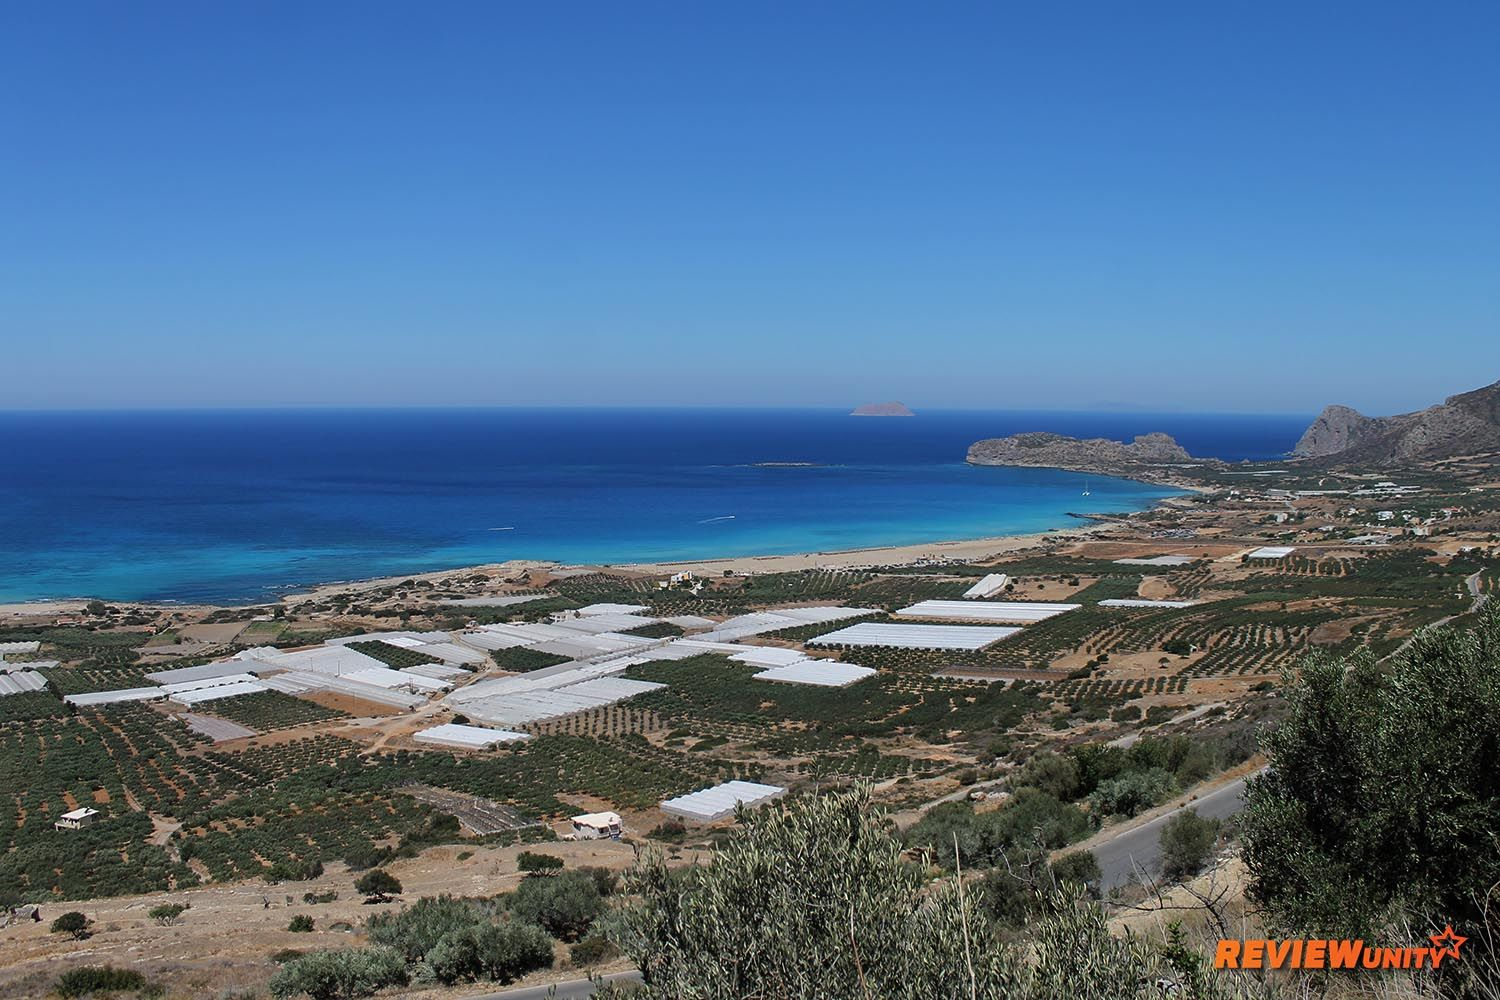 Crete island made an impression that we will remember for the rest of the life. Balos, Elafonissi, Falassarna and Preveli beach are an absolute must.